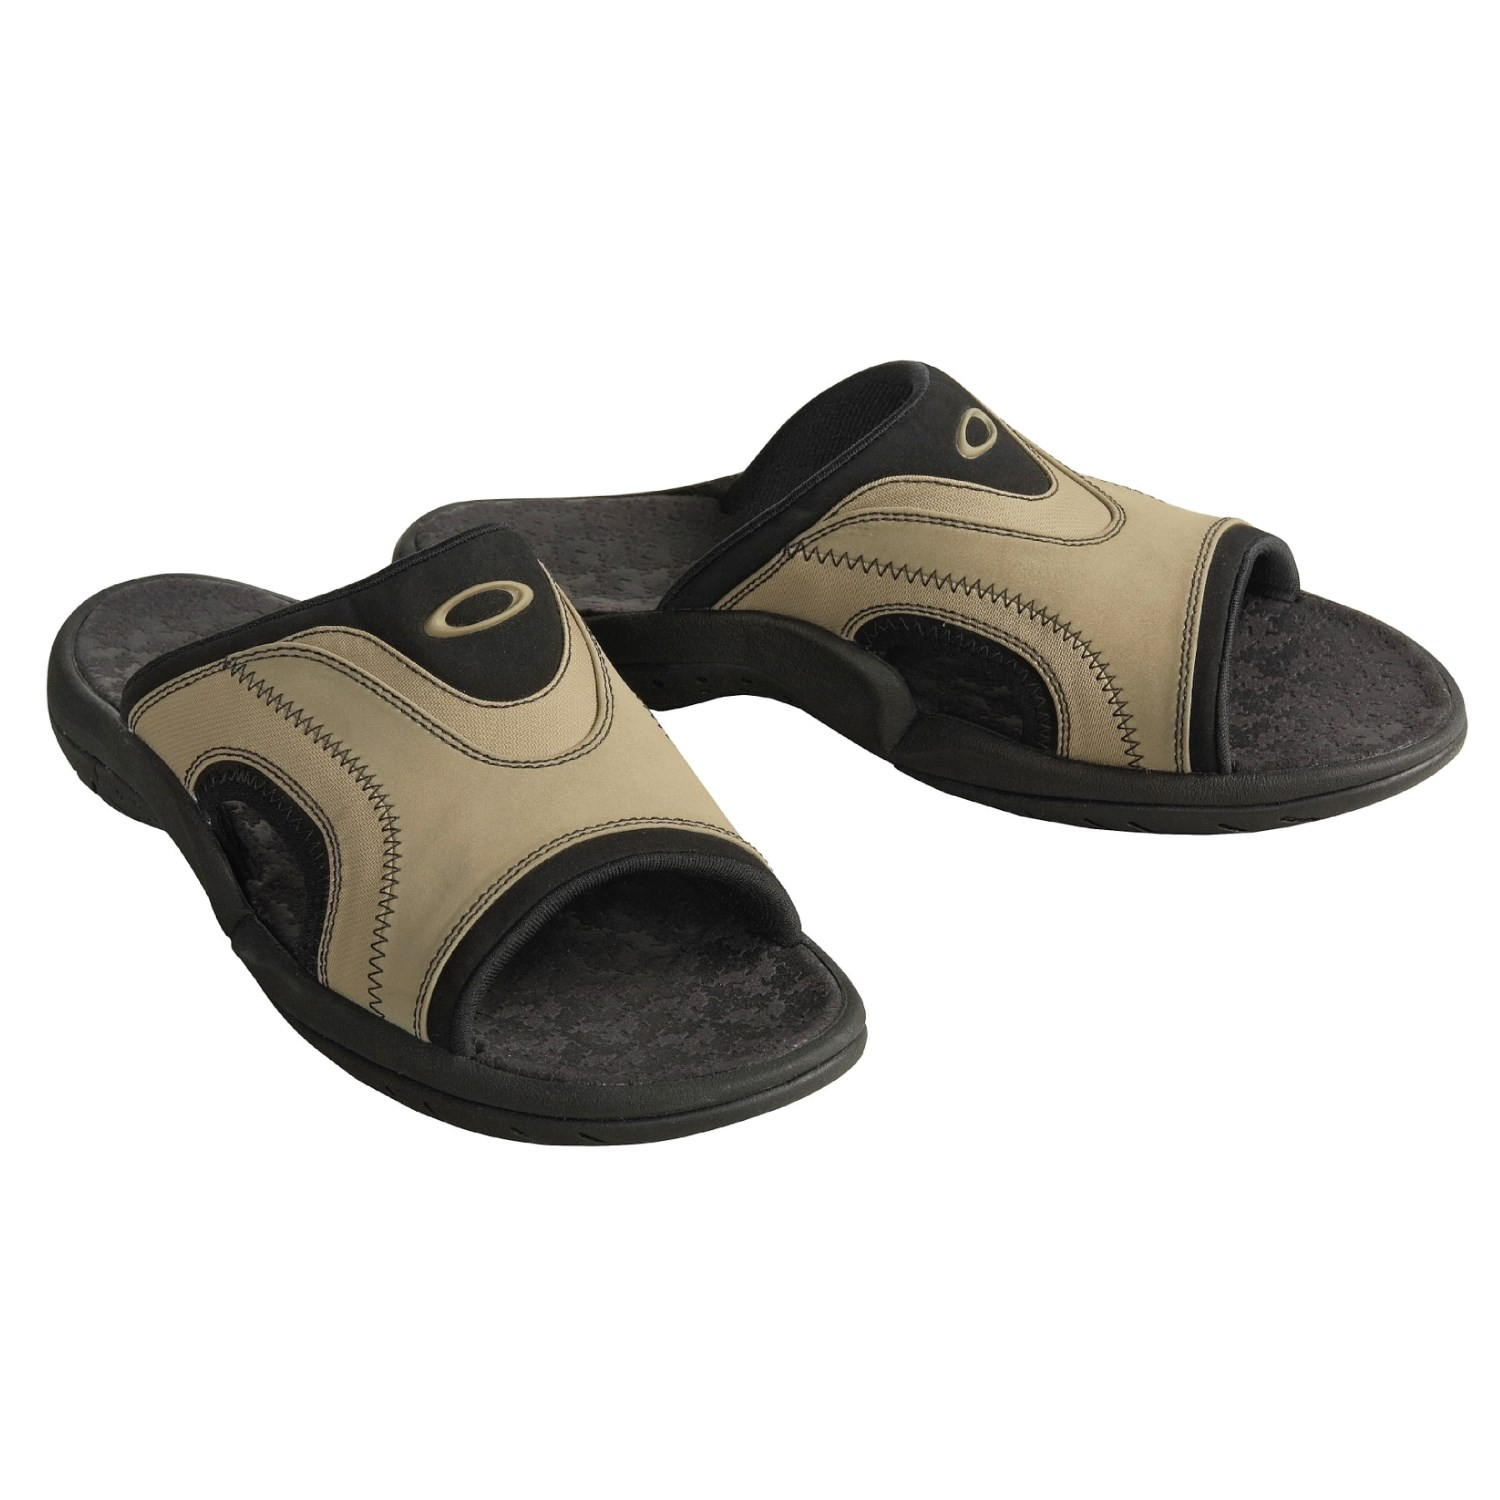 Oakley Smoke Sandals For Men 93947 Save 66